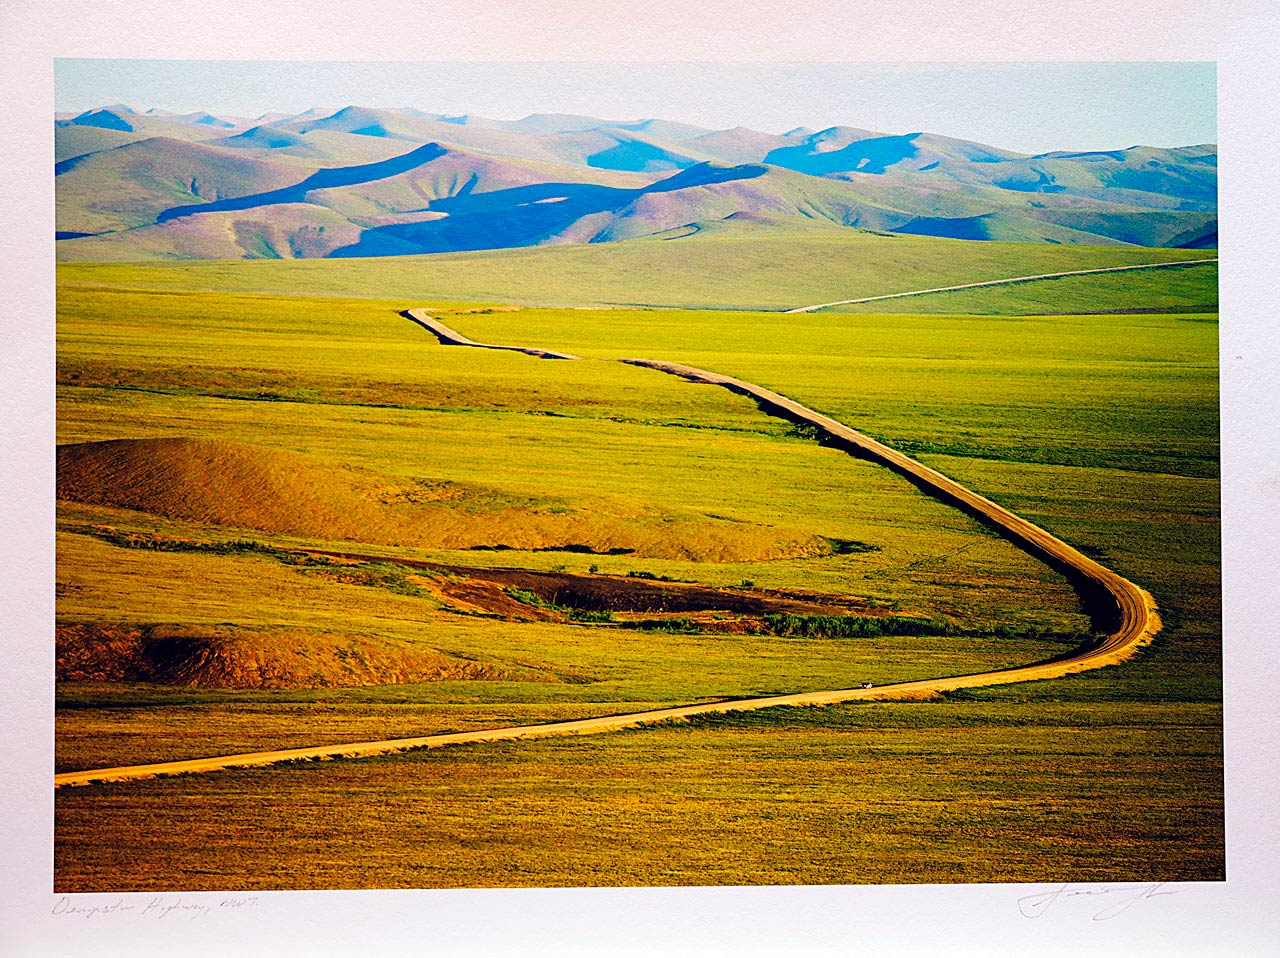 print-Canada-Northwest-Territores-dempster-highway-nwt